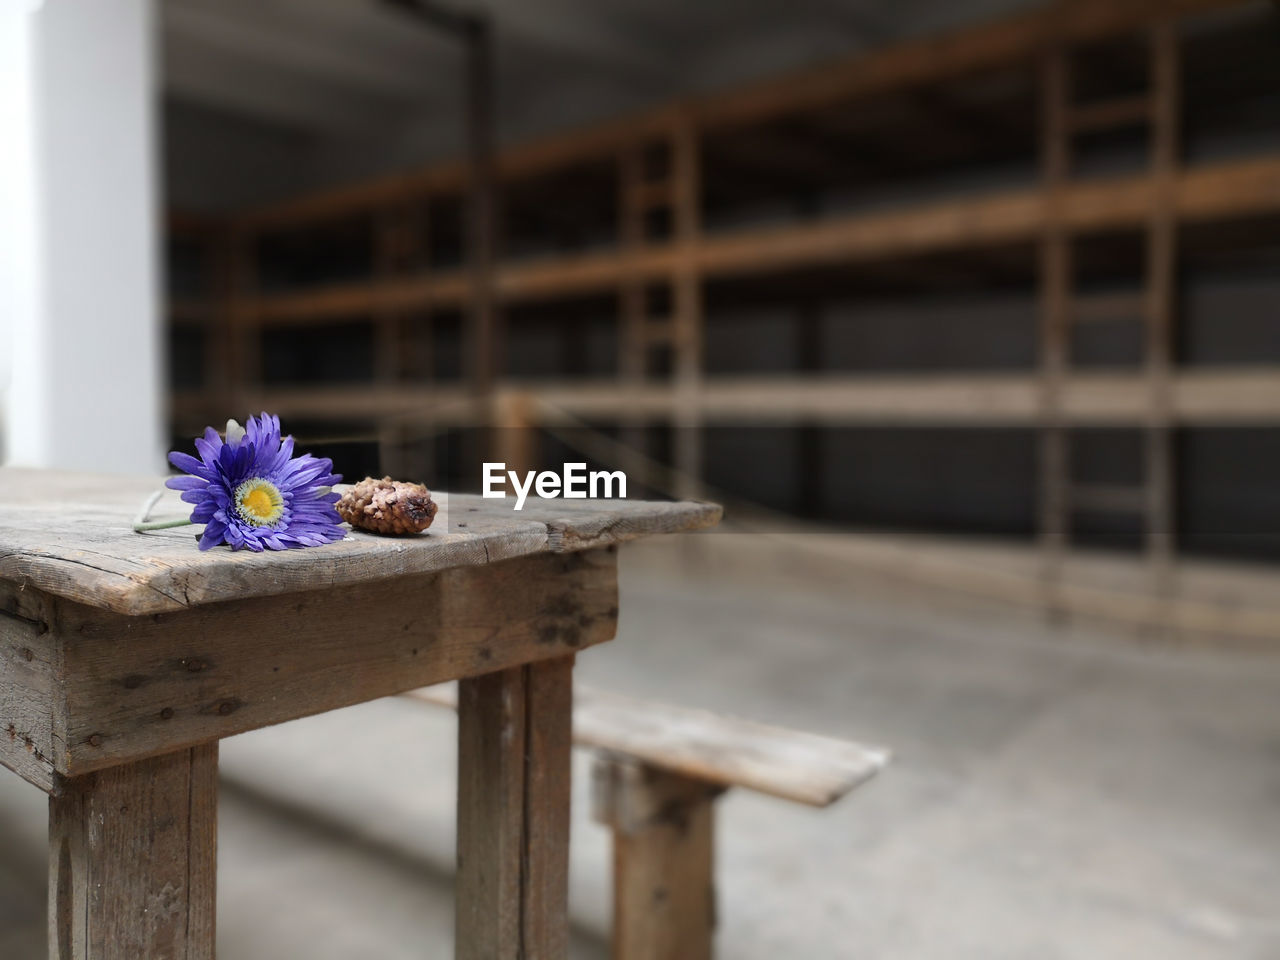 flower, flowering plant, plant, wood - material, freshness, fragility, vulnerability, nature, no people, focus on foreground, day, close-up, beauty in nature, outdoors, petal, built structure, architecture, flower head, table, selective focus